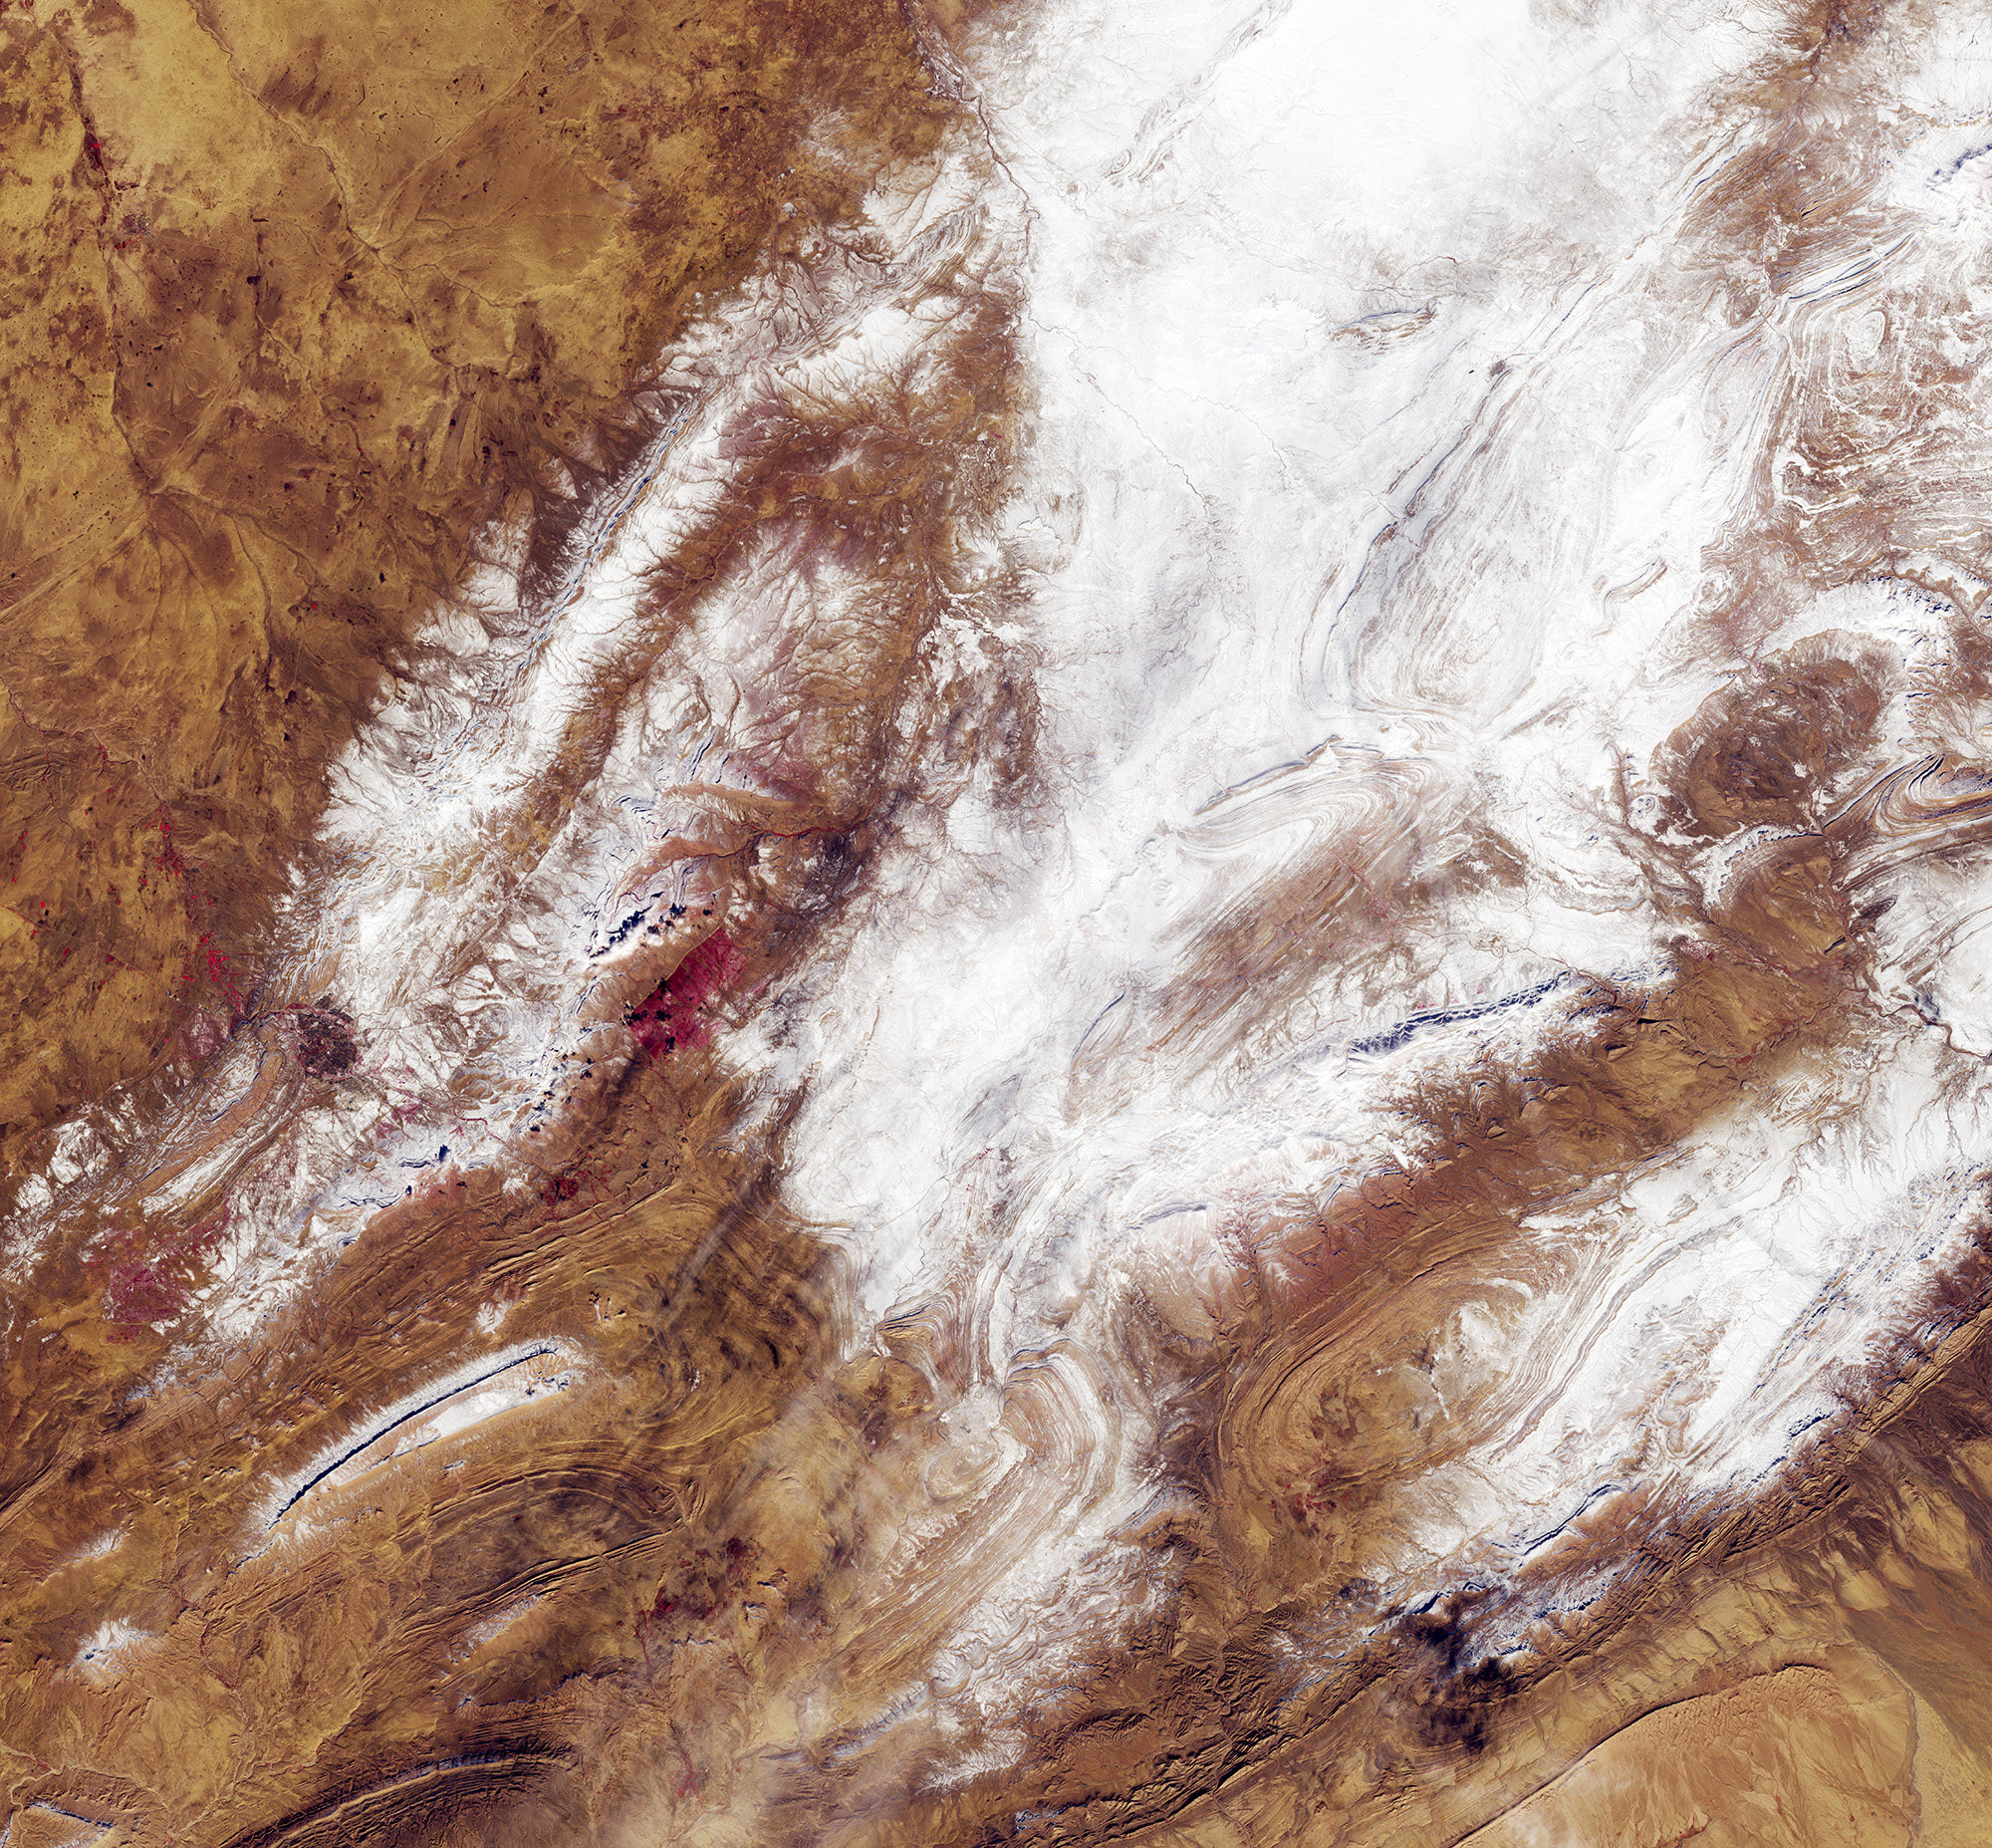 The image of the Sahara Desert dusted in snow, as captured by the Copernicus Sentinel-2 mission.